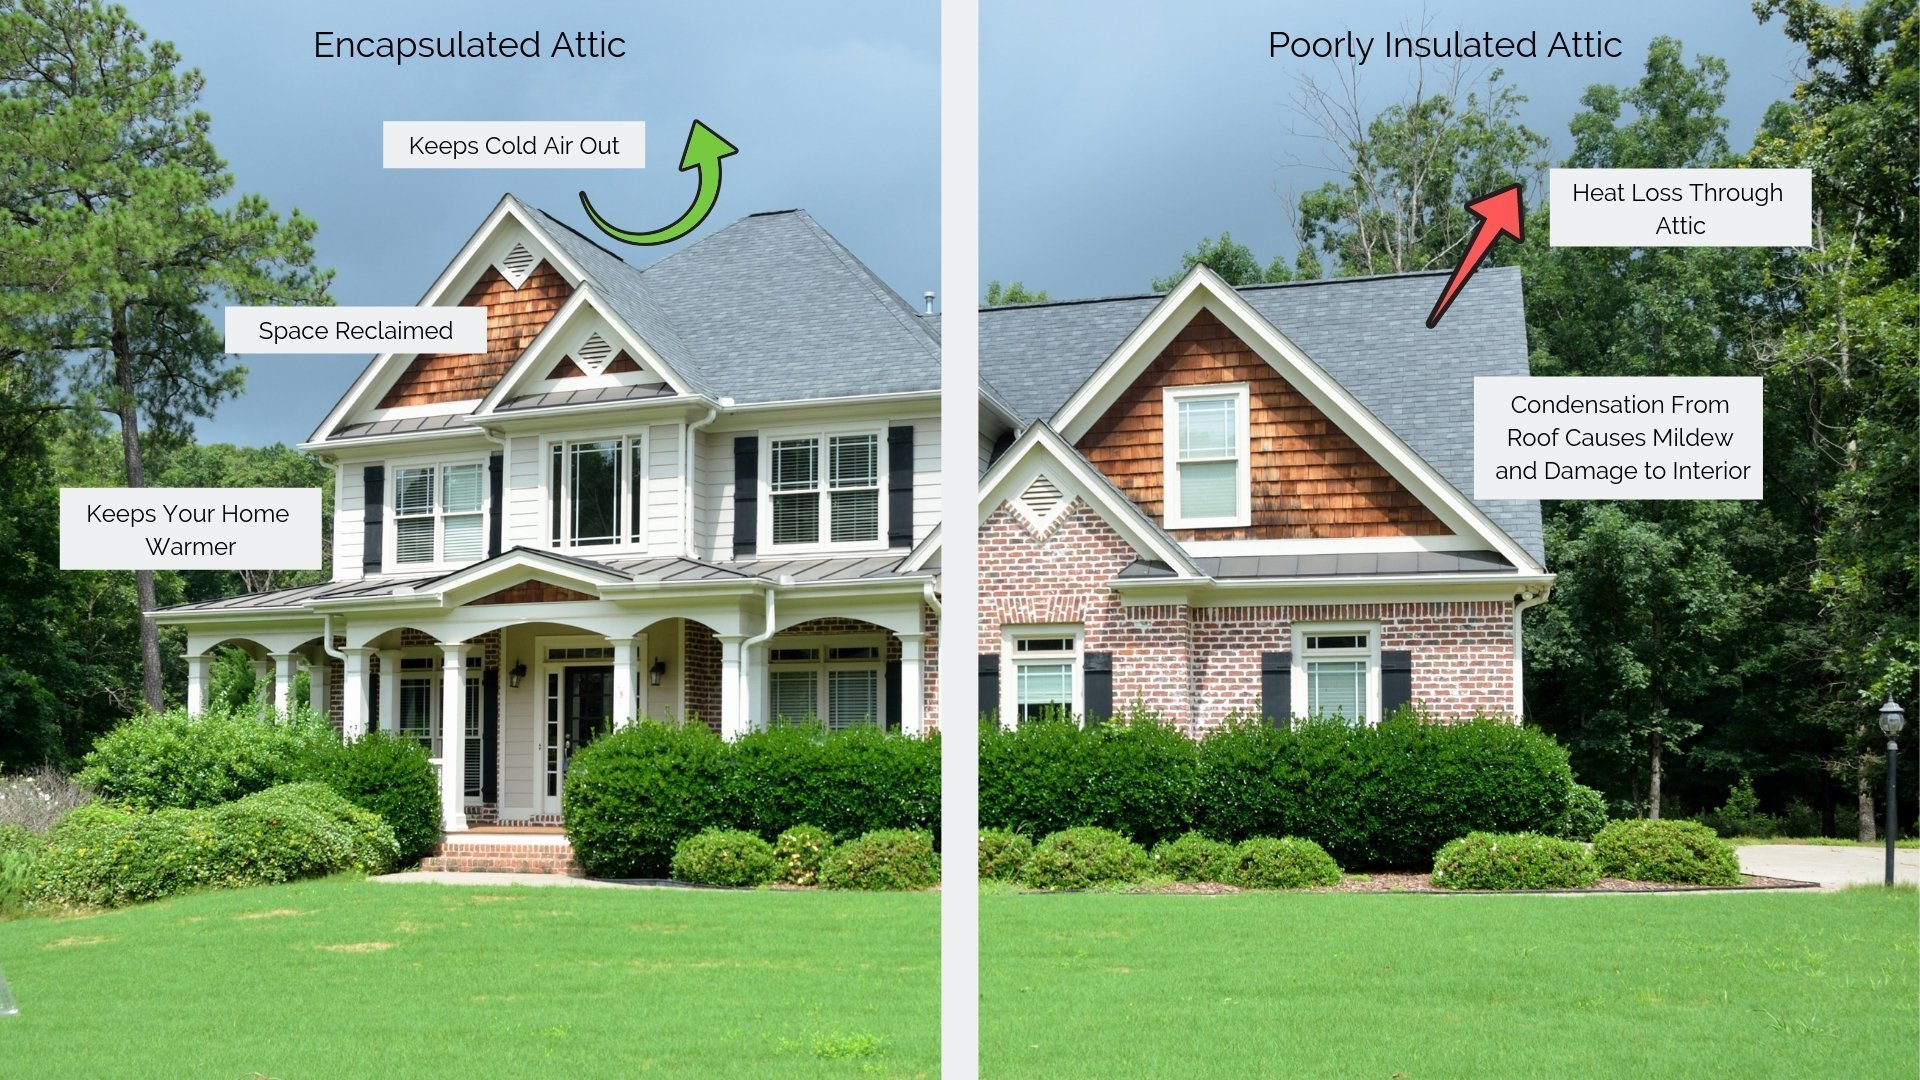 Diagram Comparing Home With or Without Attic Encapsulation